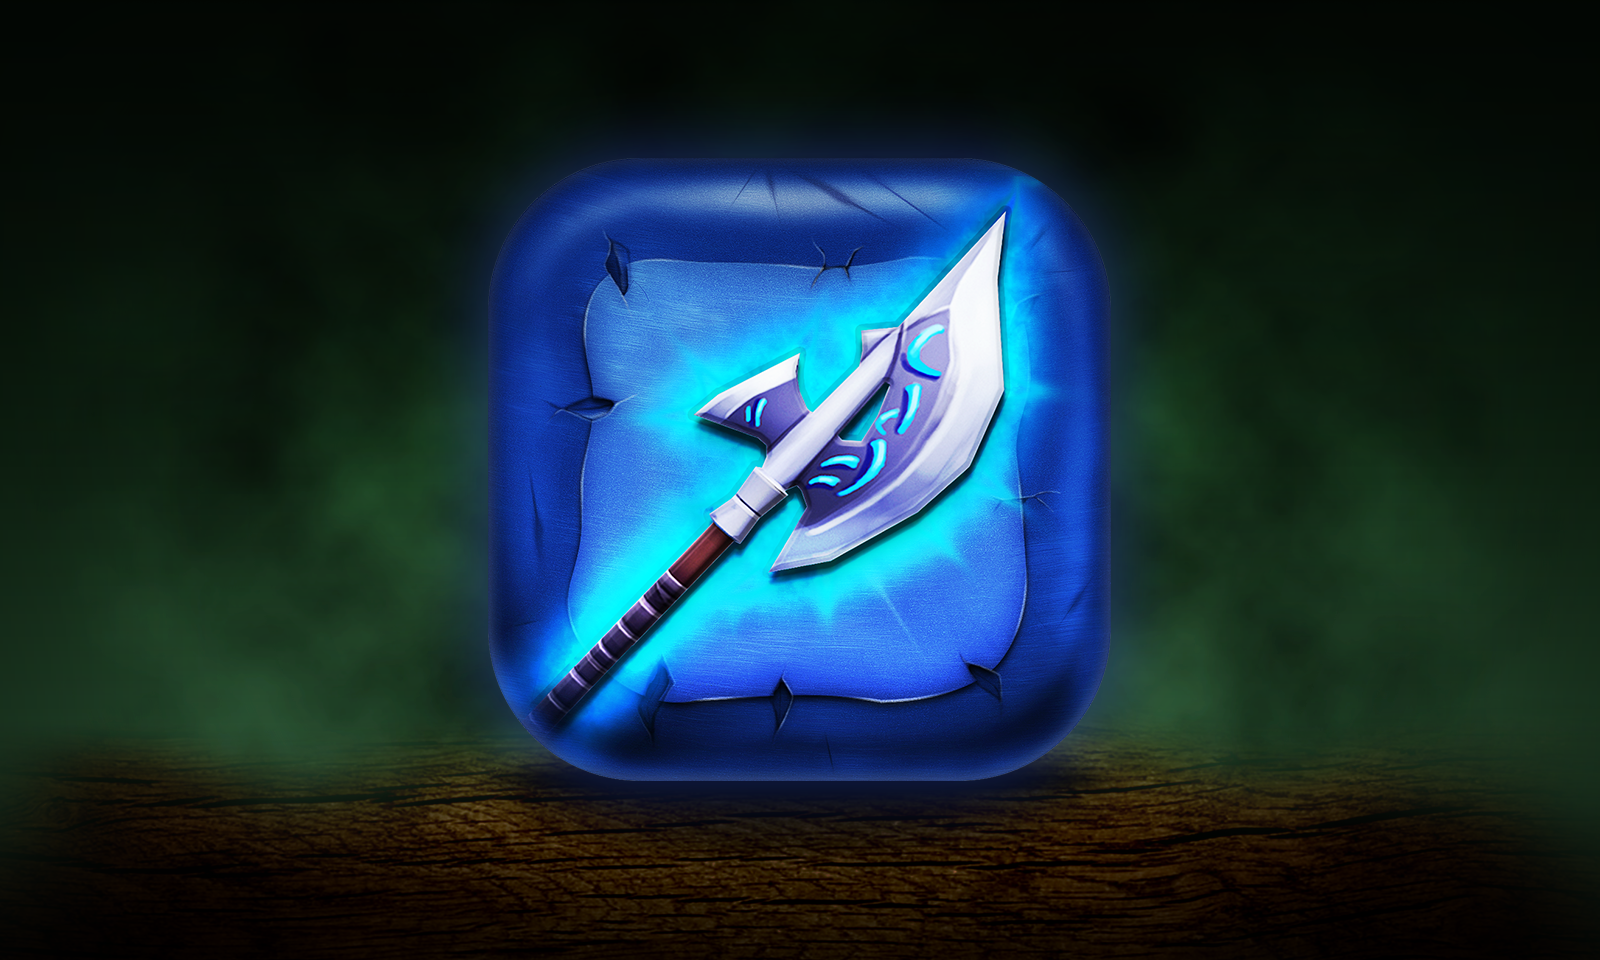 Mobile app icon for stylized game, Mageblade